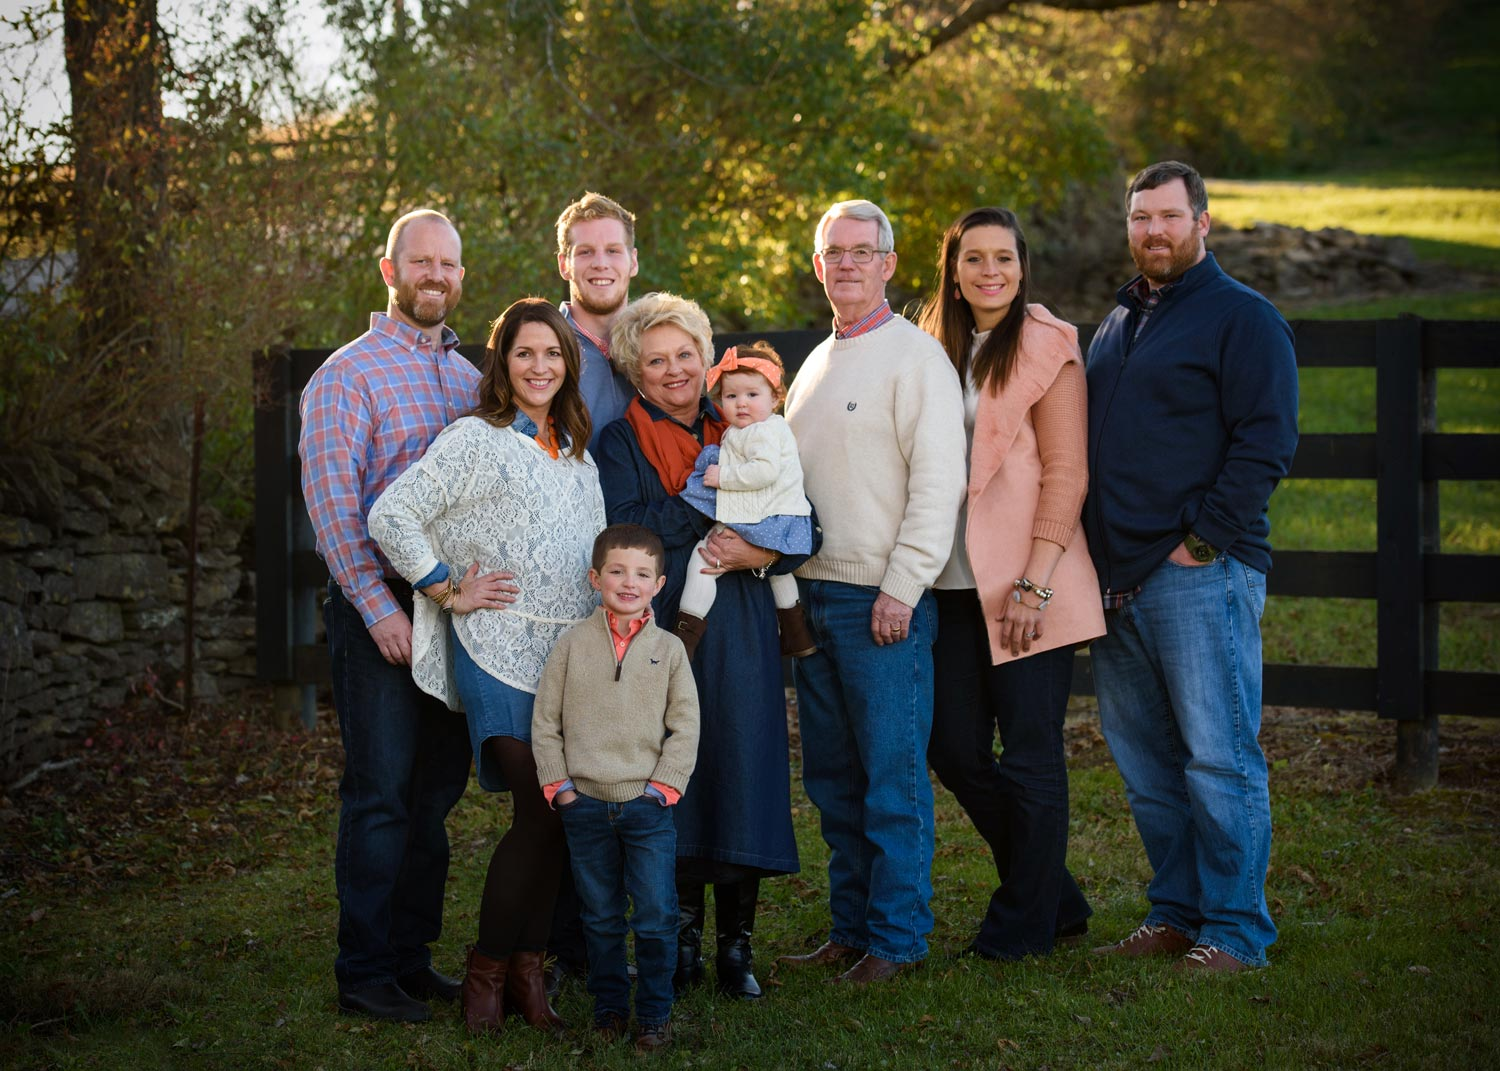 family_photography_by_Scott_Walz_studio_walz_Lexington_Ky076.jpg